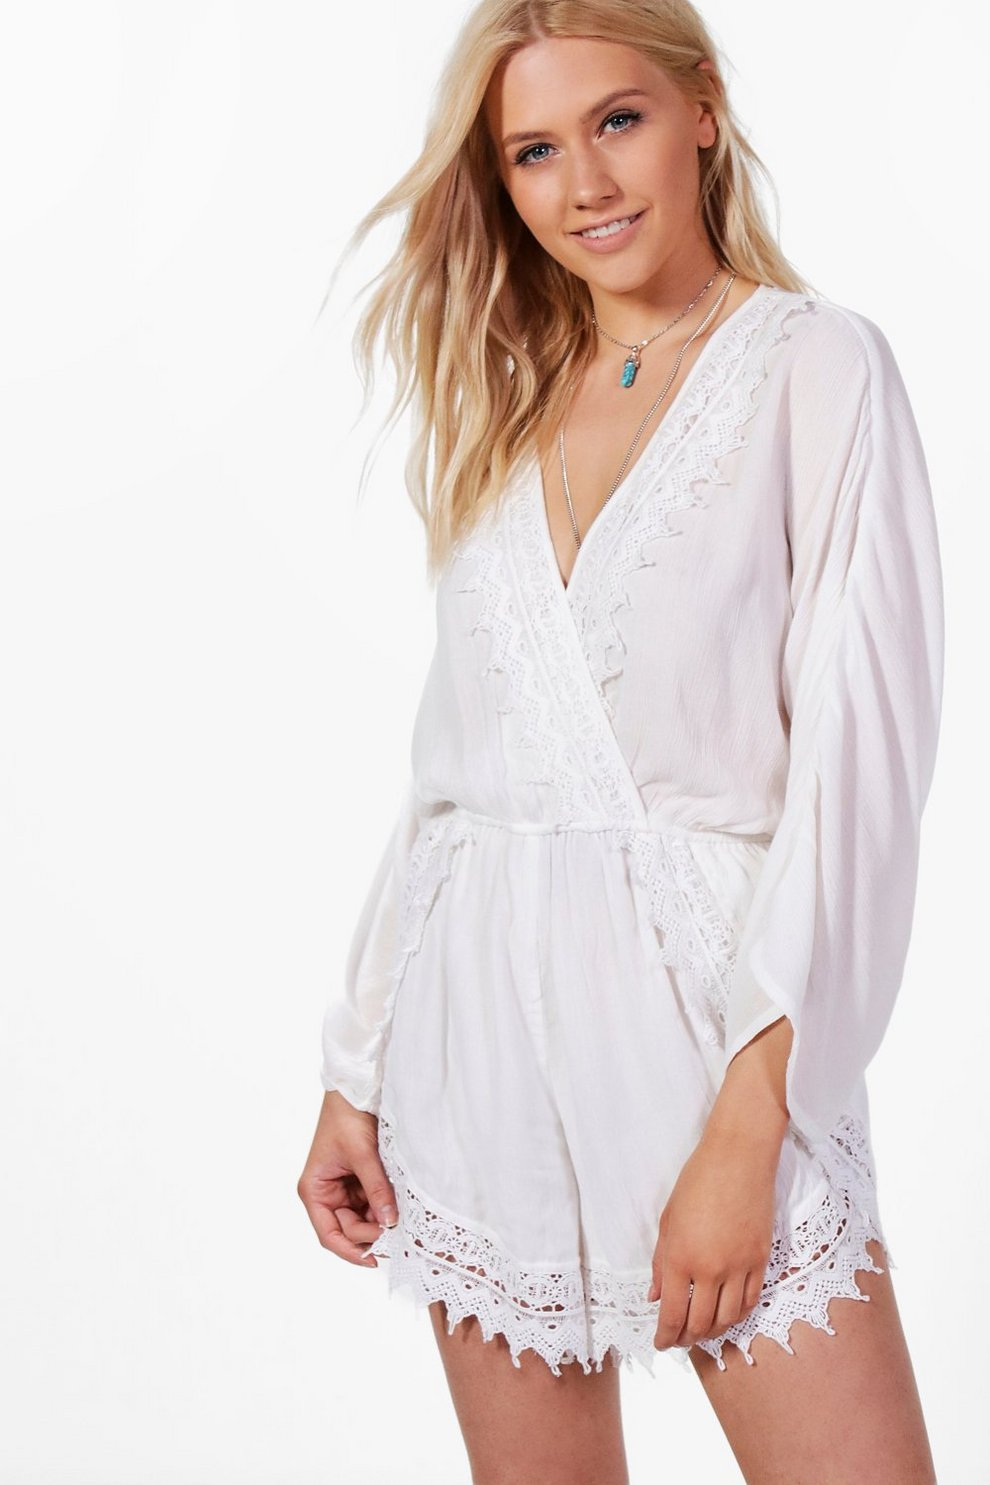 Boohoo Flare Sleeve Crochet Playsuit Explore For Sale Buy Cheap Countdown Package TEoryqn